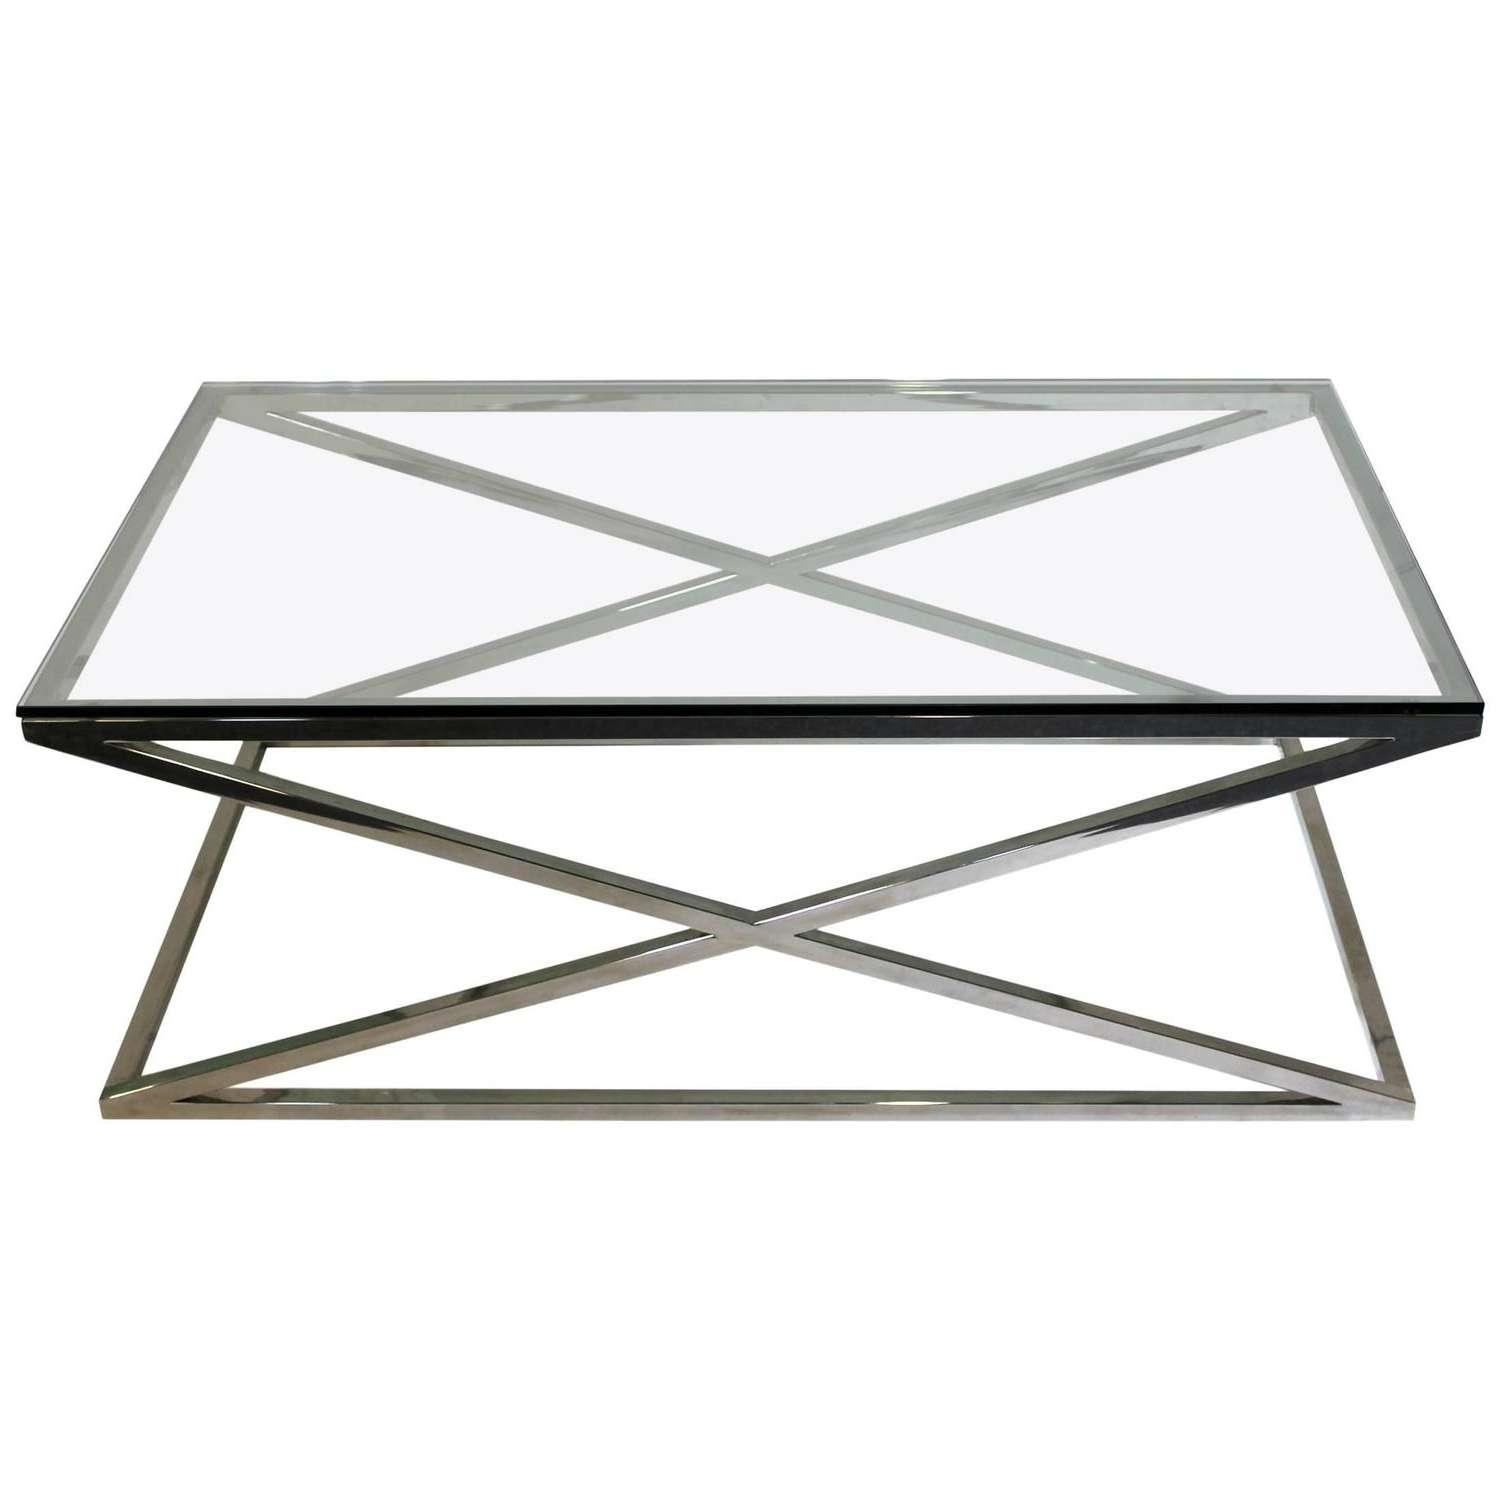 Mid Century Modern Rectangular Glass Coffee Table Chrome X Base At For Latest Rectangle Glass Chrome Coffee Tables (View 16 of 20)